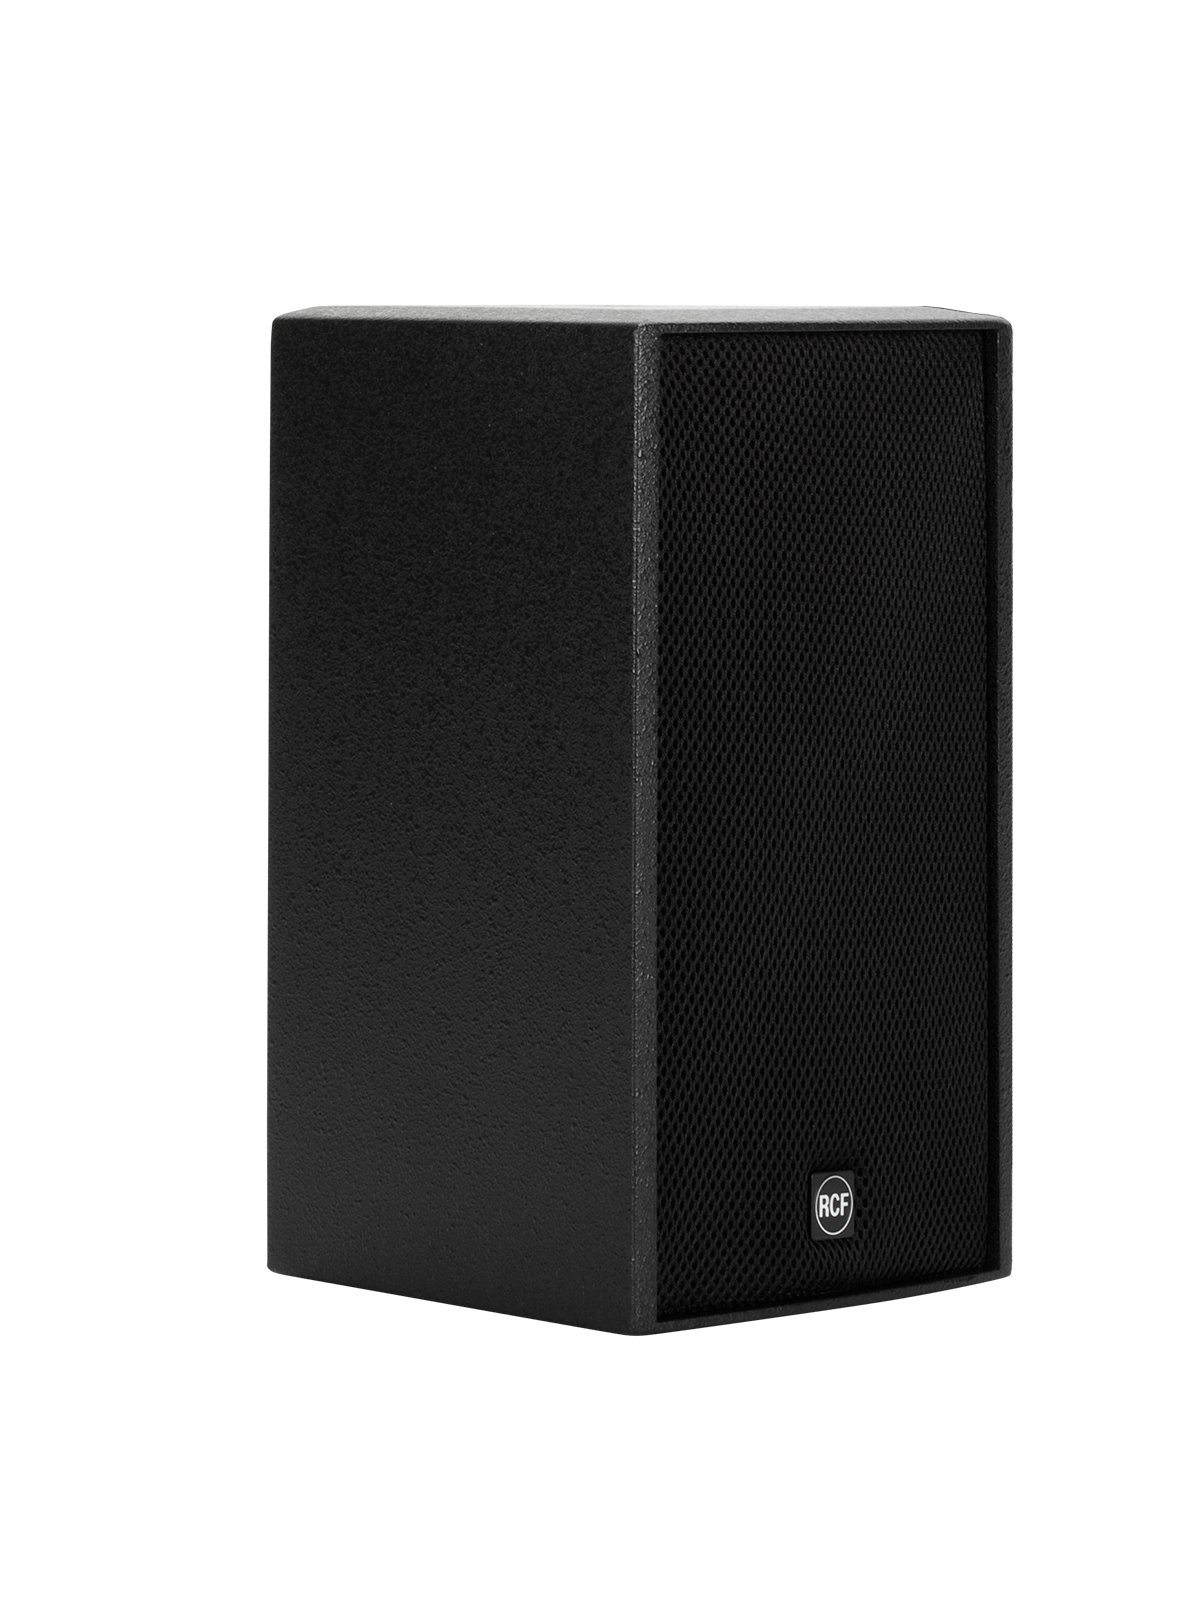 Two-Way Passive Speaker with Hi-Fi Sound